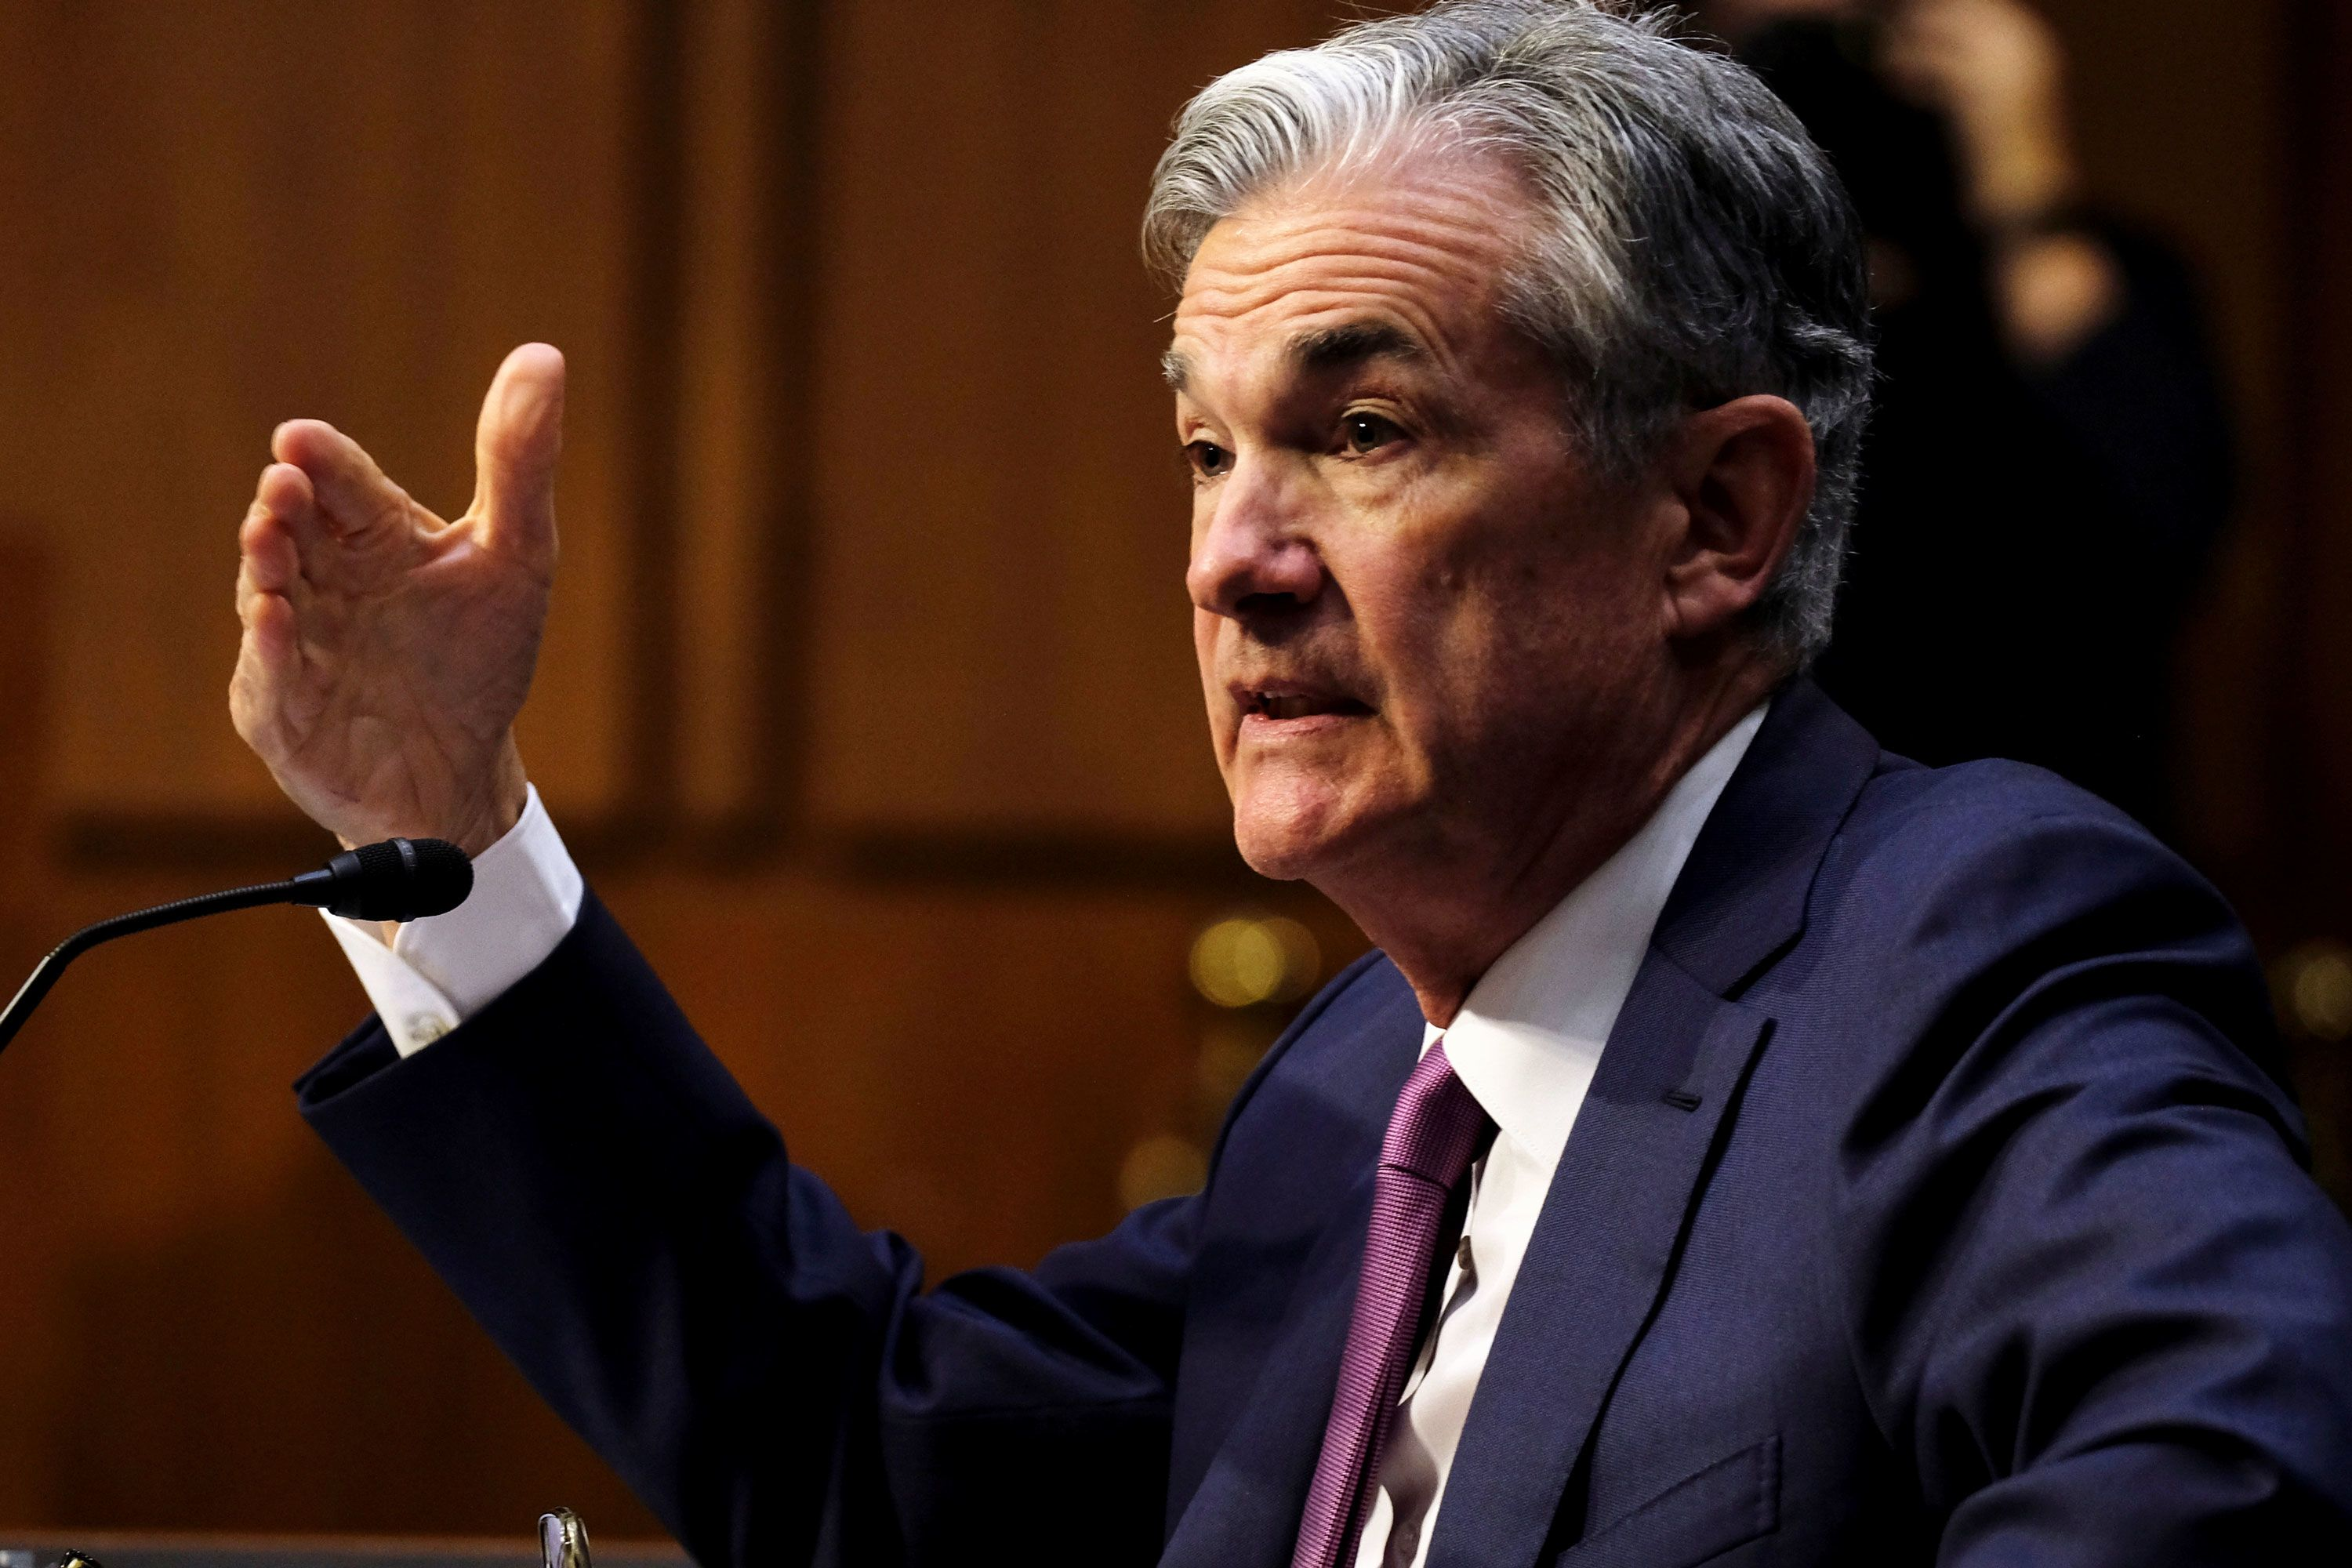 Fed to cut rates for first time since 2008 to save economic expansion